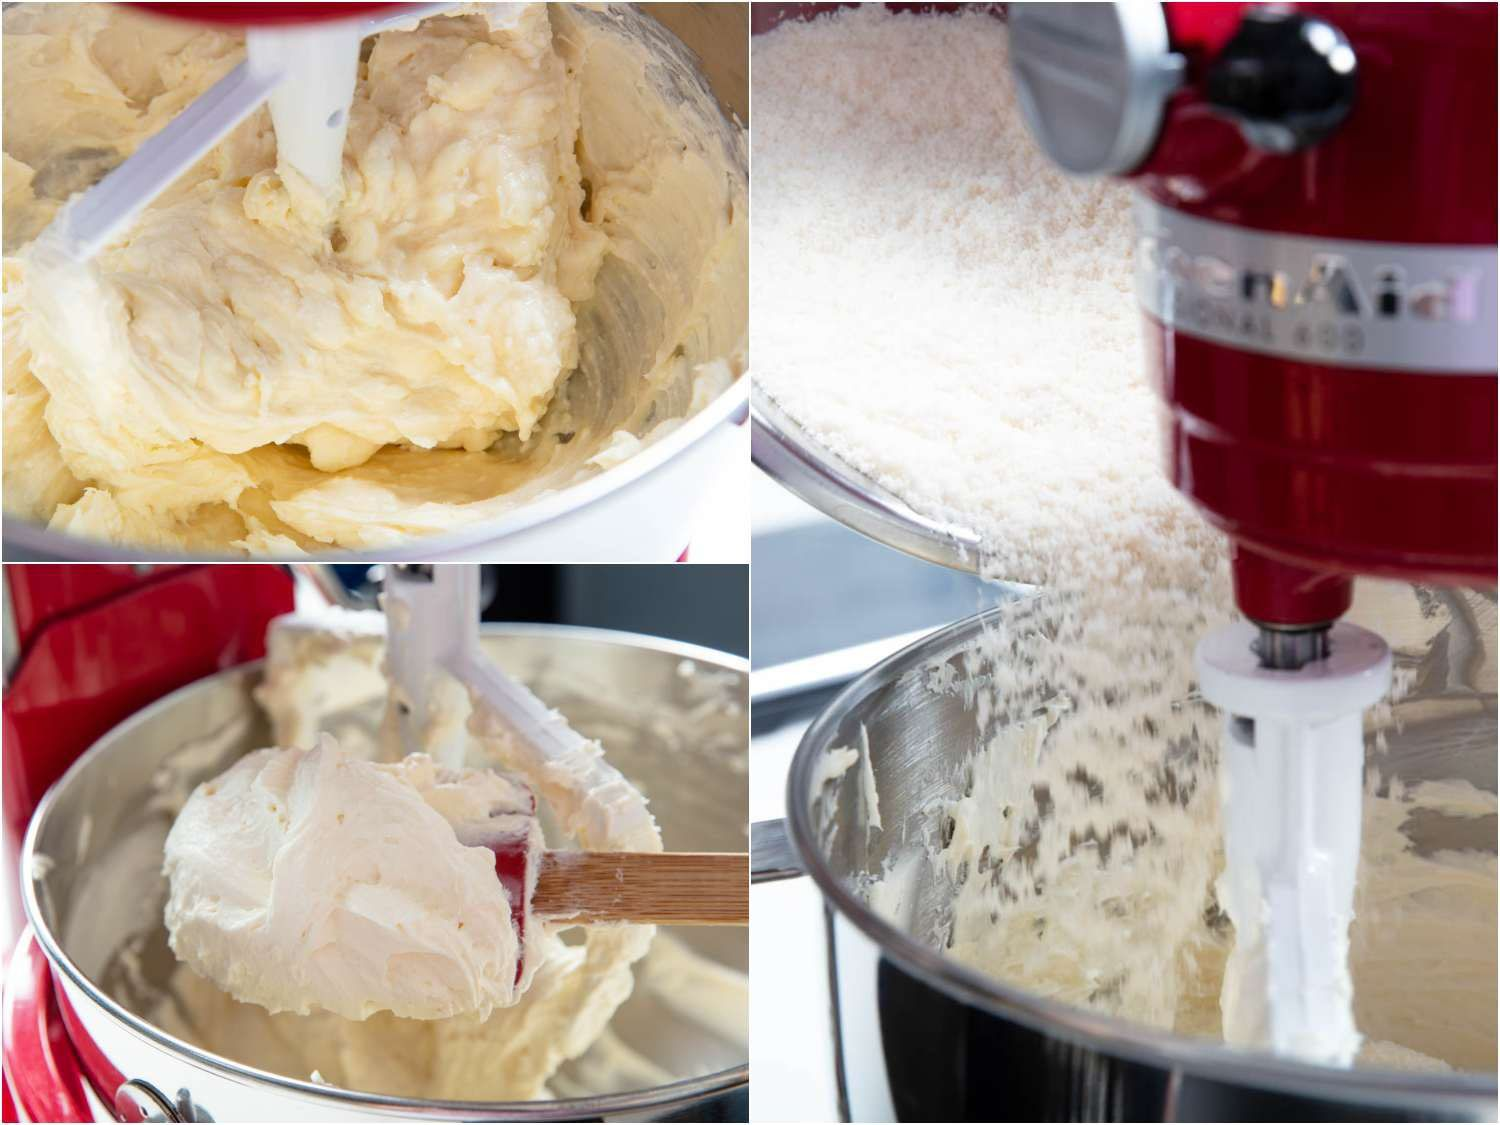 beating the cream cheese and goat cheese before adding the sugar